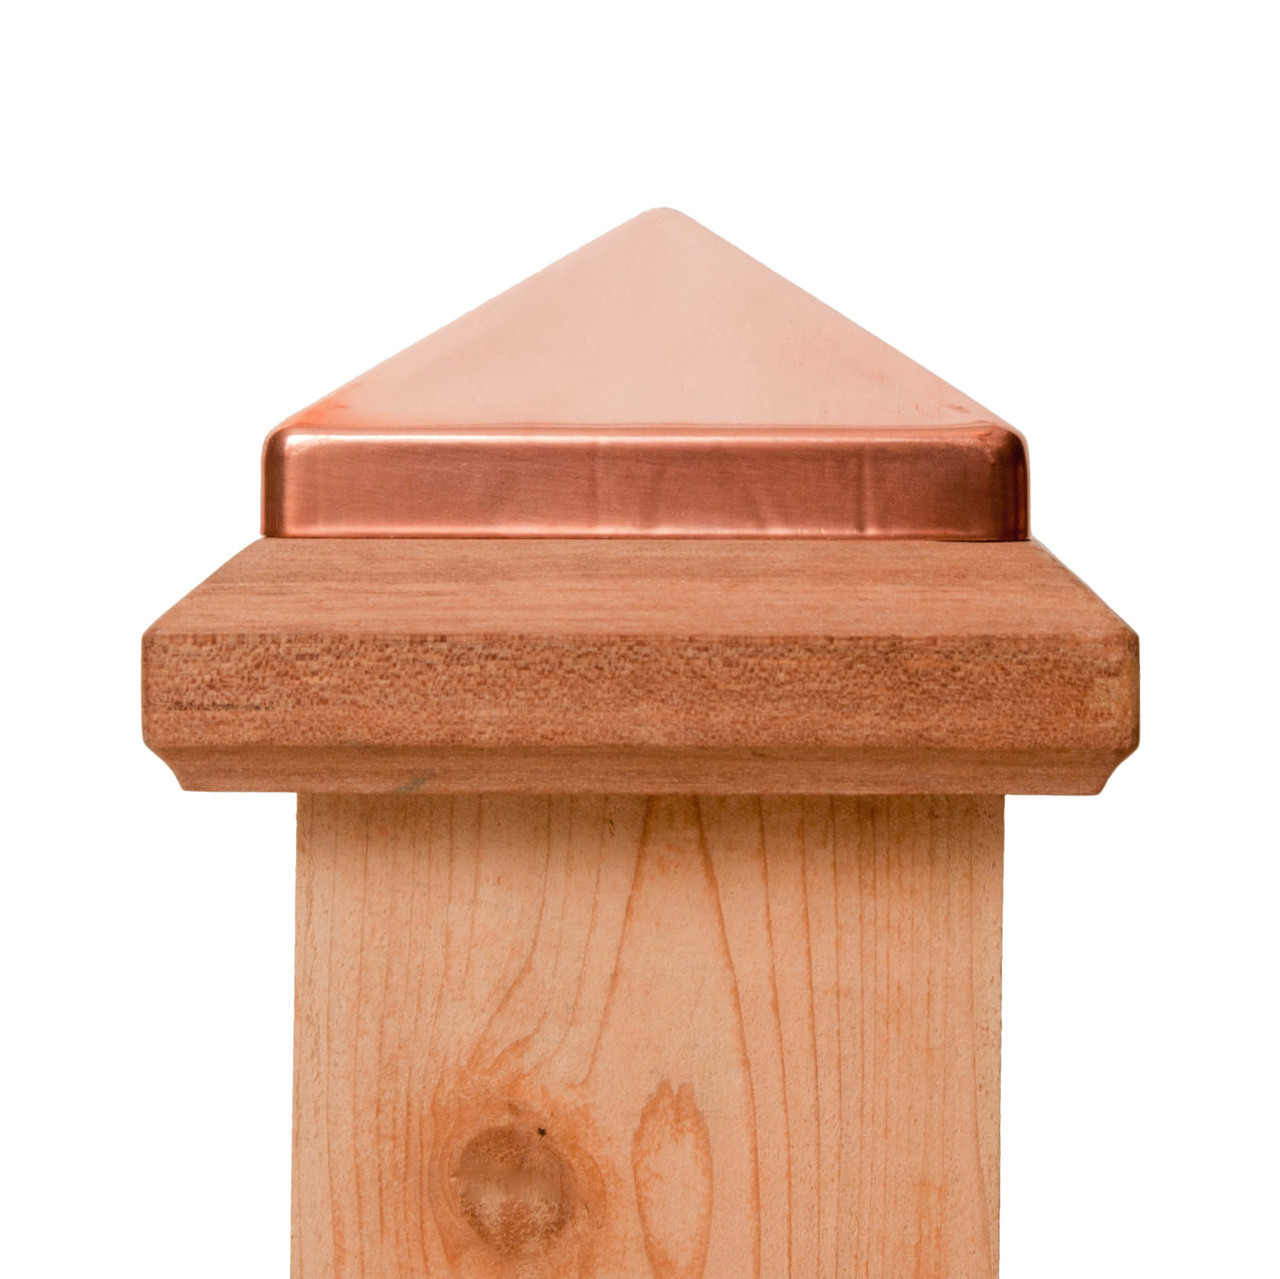 4x4 Traditional Miterless Wood Post Cap™ w/ Copper Pyramid